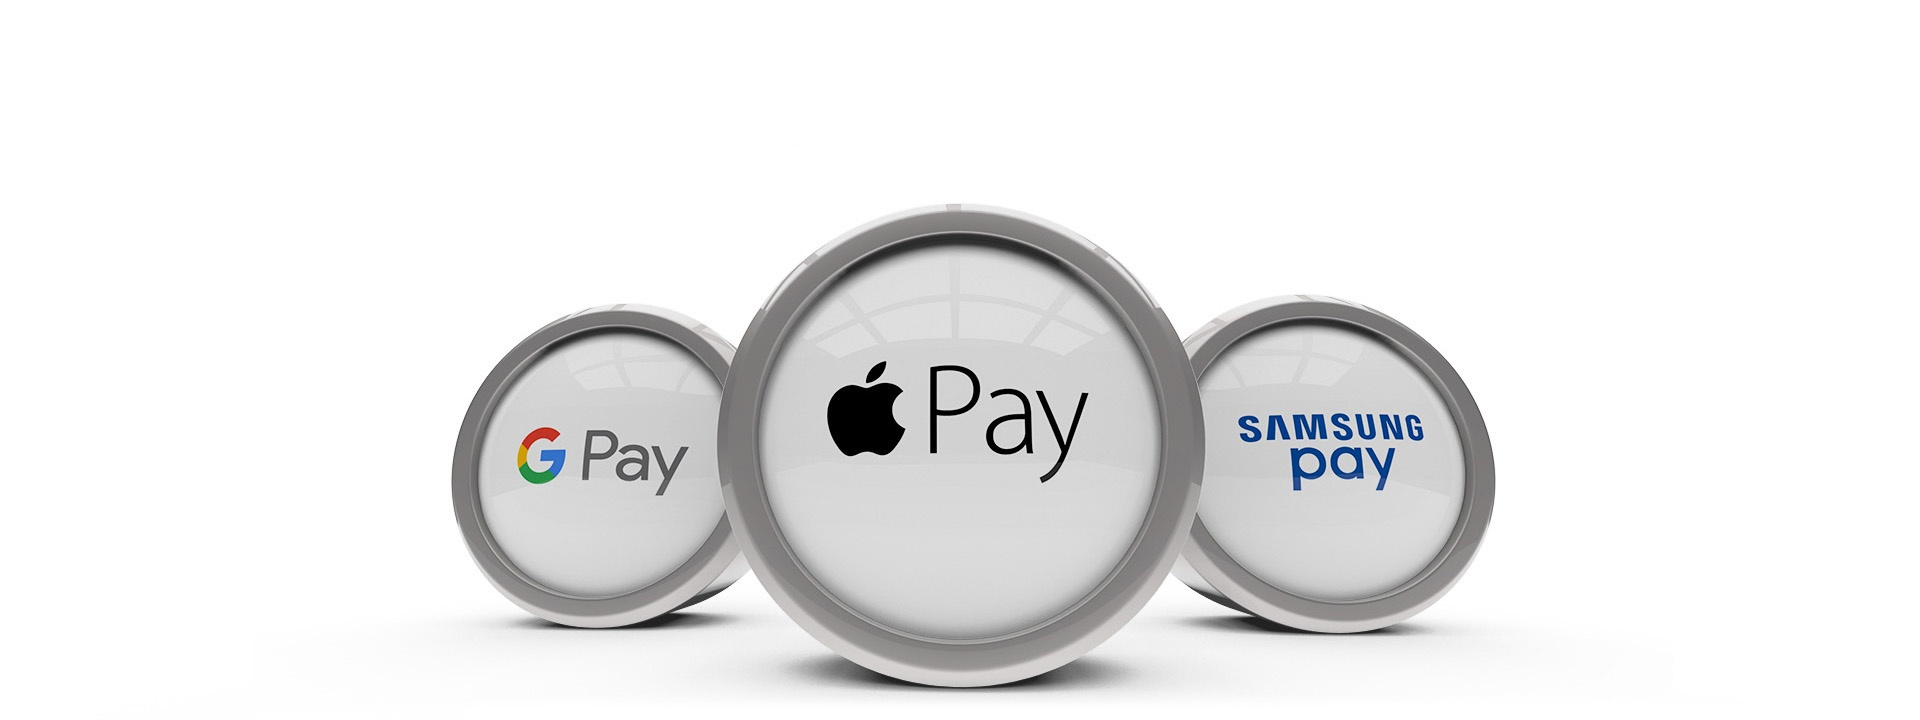 three metal and glass discs displaying google pay, apple pay, and samsung pay logos from left to right